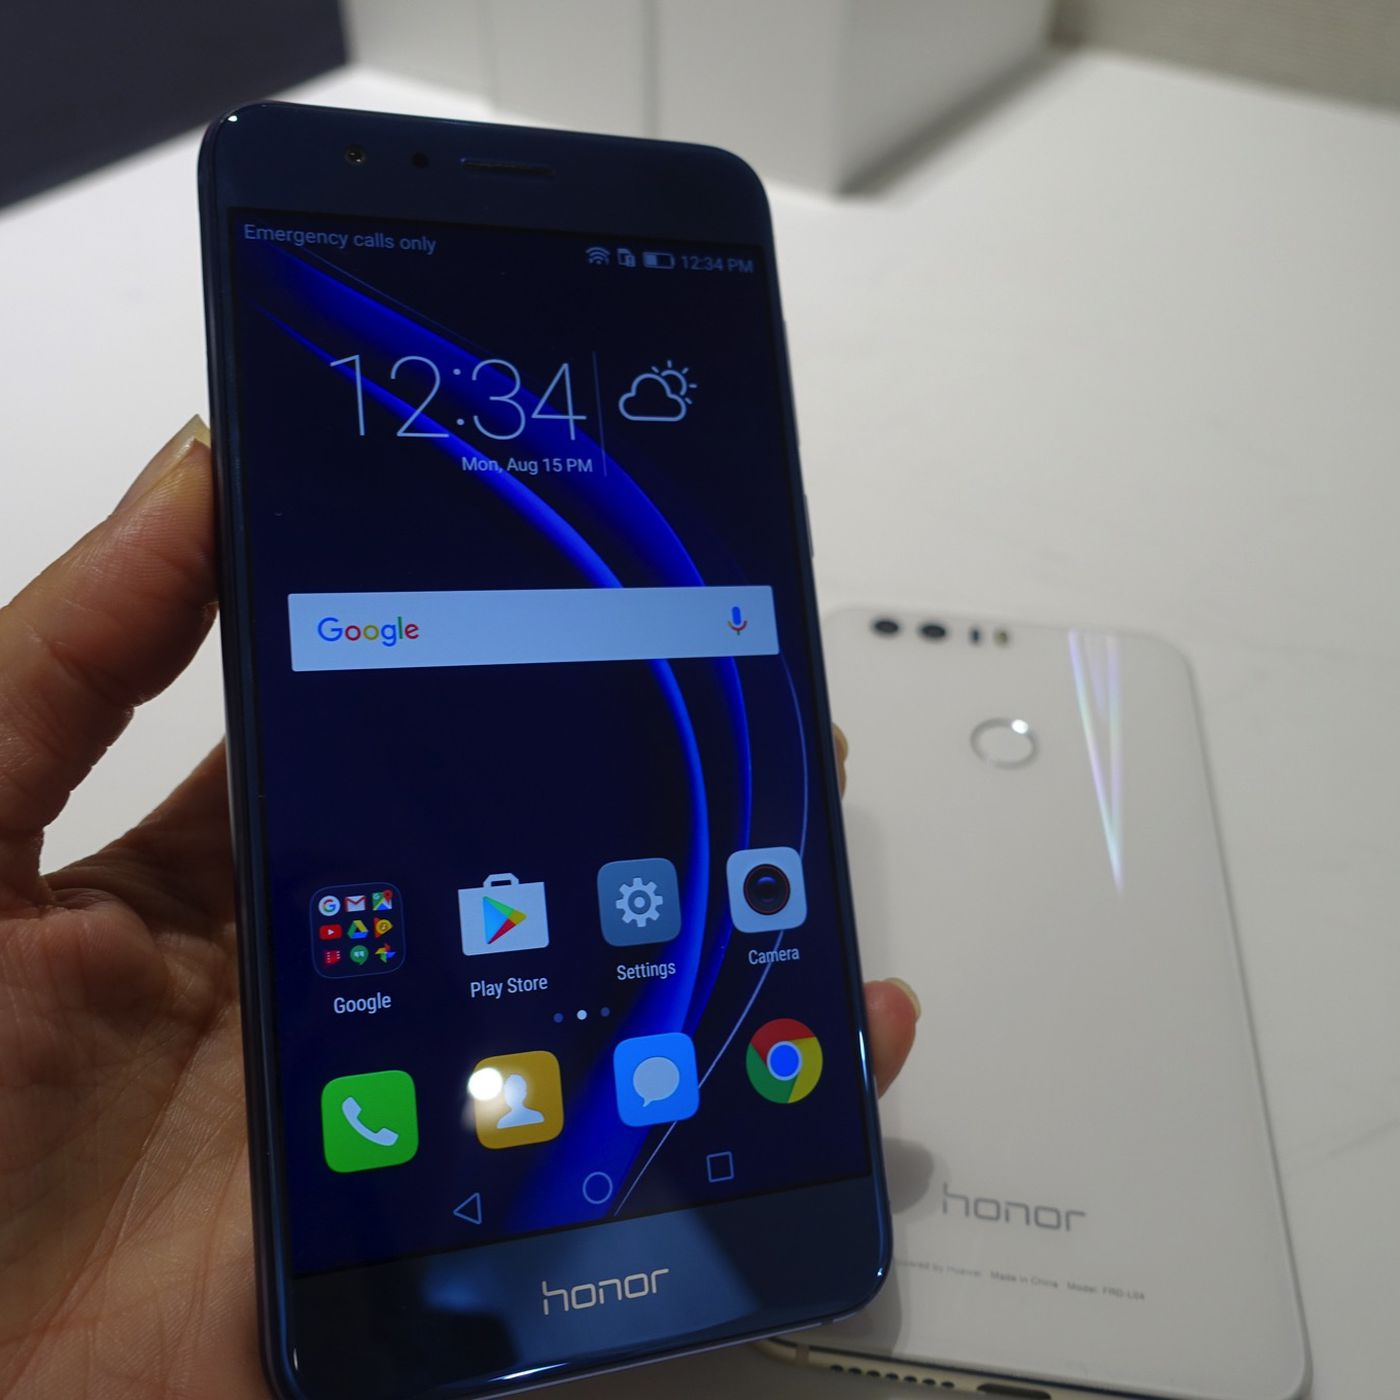 098427606c Huawei has surpassed Apple as the world's second largest smartphone brand